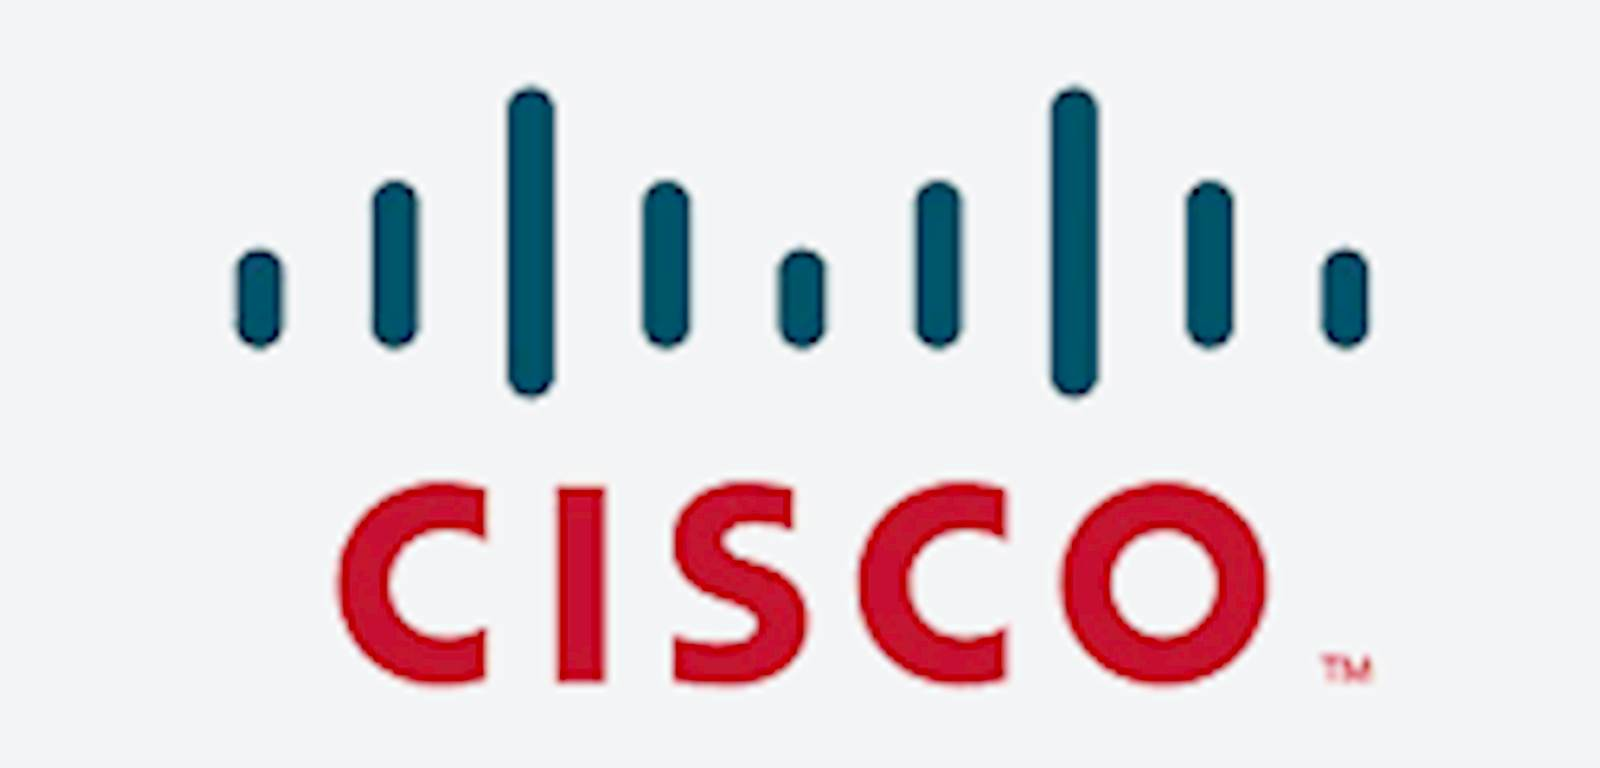 Implementing and Administering Cisco Solutions Course Details